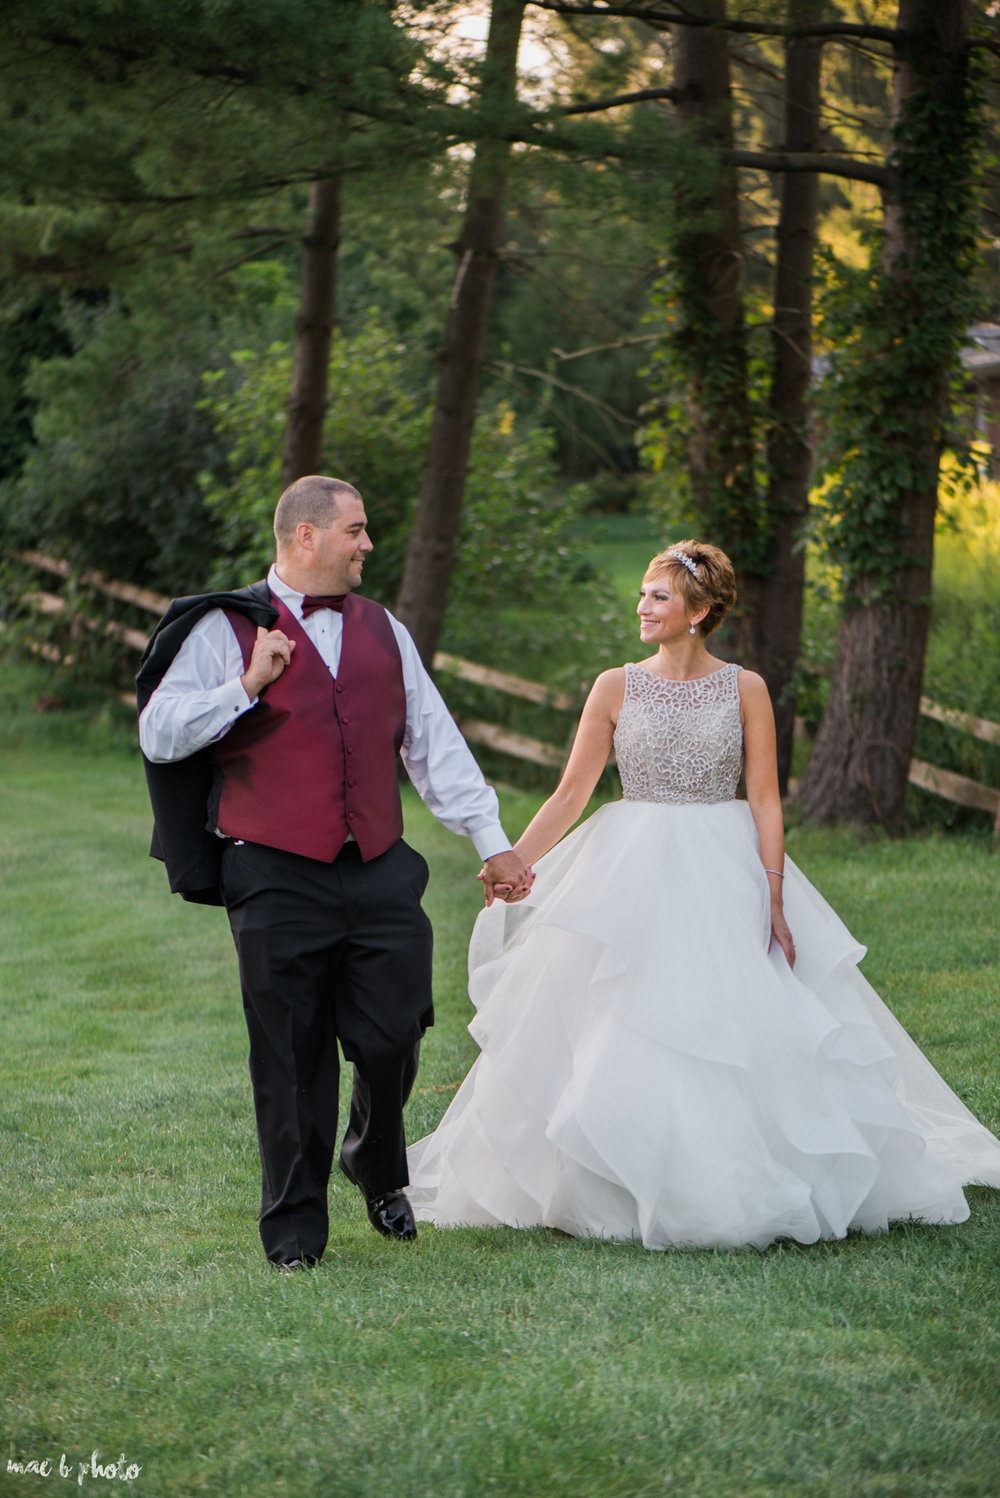 Mary Catherine & Chad's Elegant and Intimate Country Club Wedding at Squaw Creek in Youngstown Ohio by Mae B Photo-82.jpg